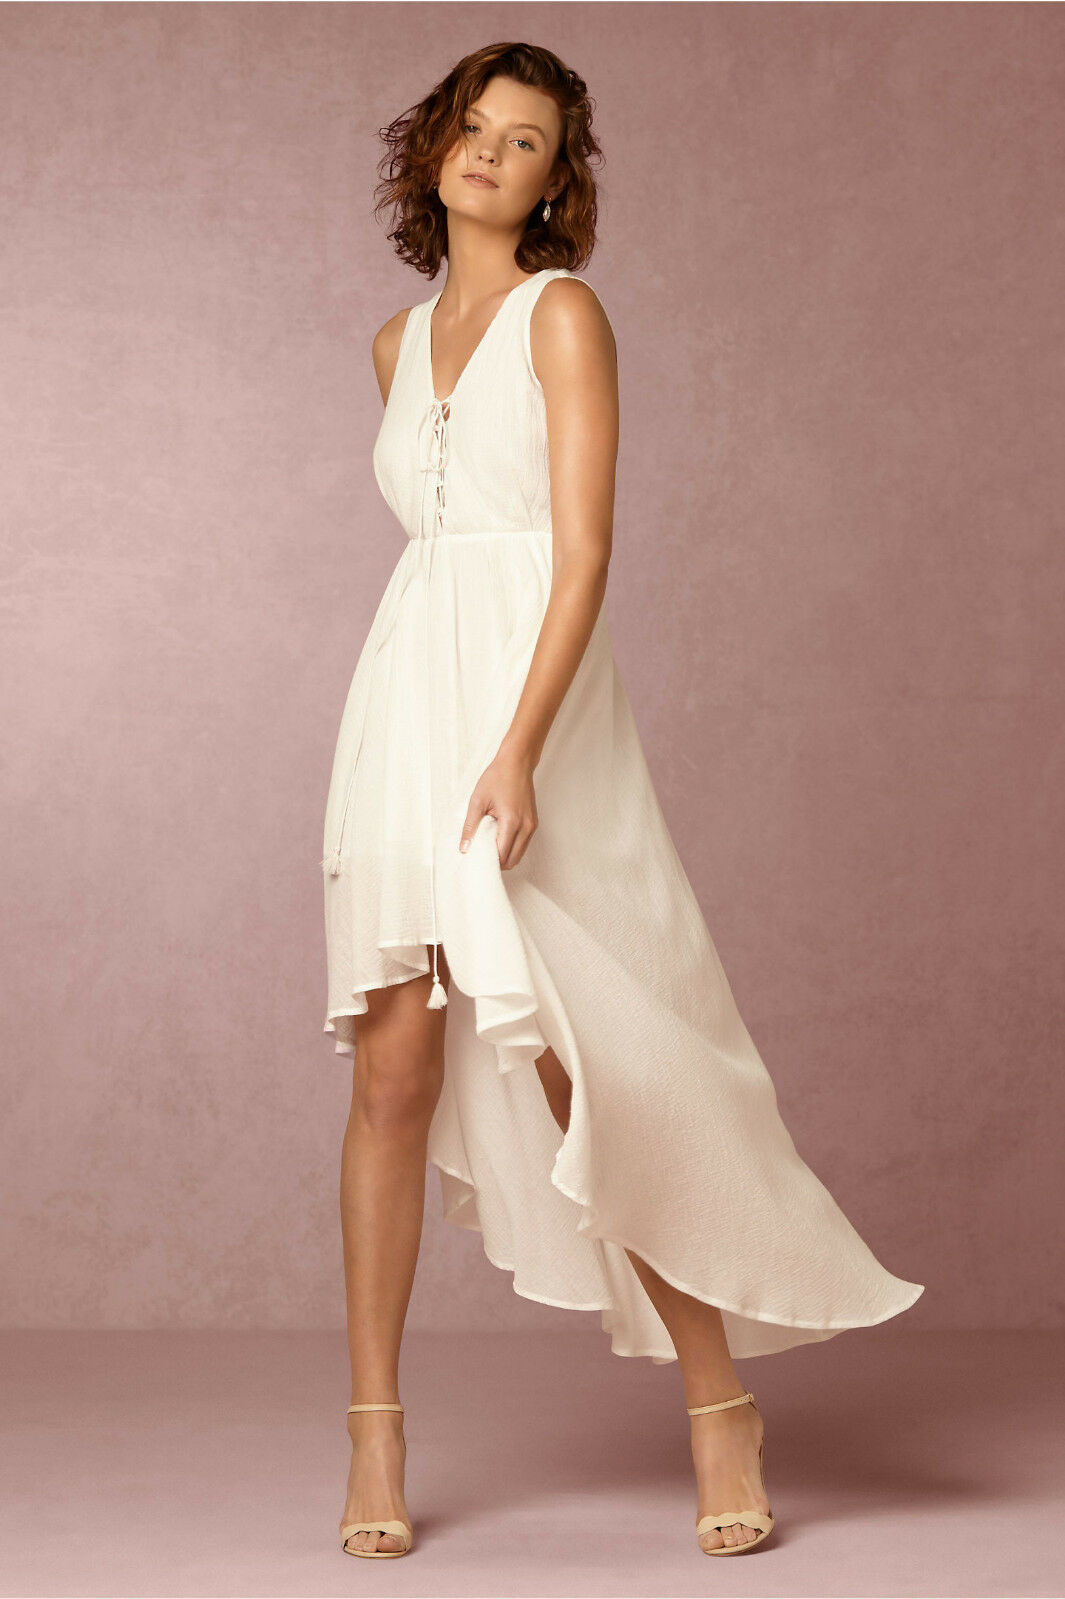 NEW ANTHROPOLOGIE BHLDN  IVORY HIGH-LOW KATJA DRESS BY THE JETSET DIARIES L